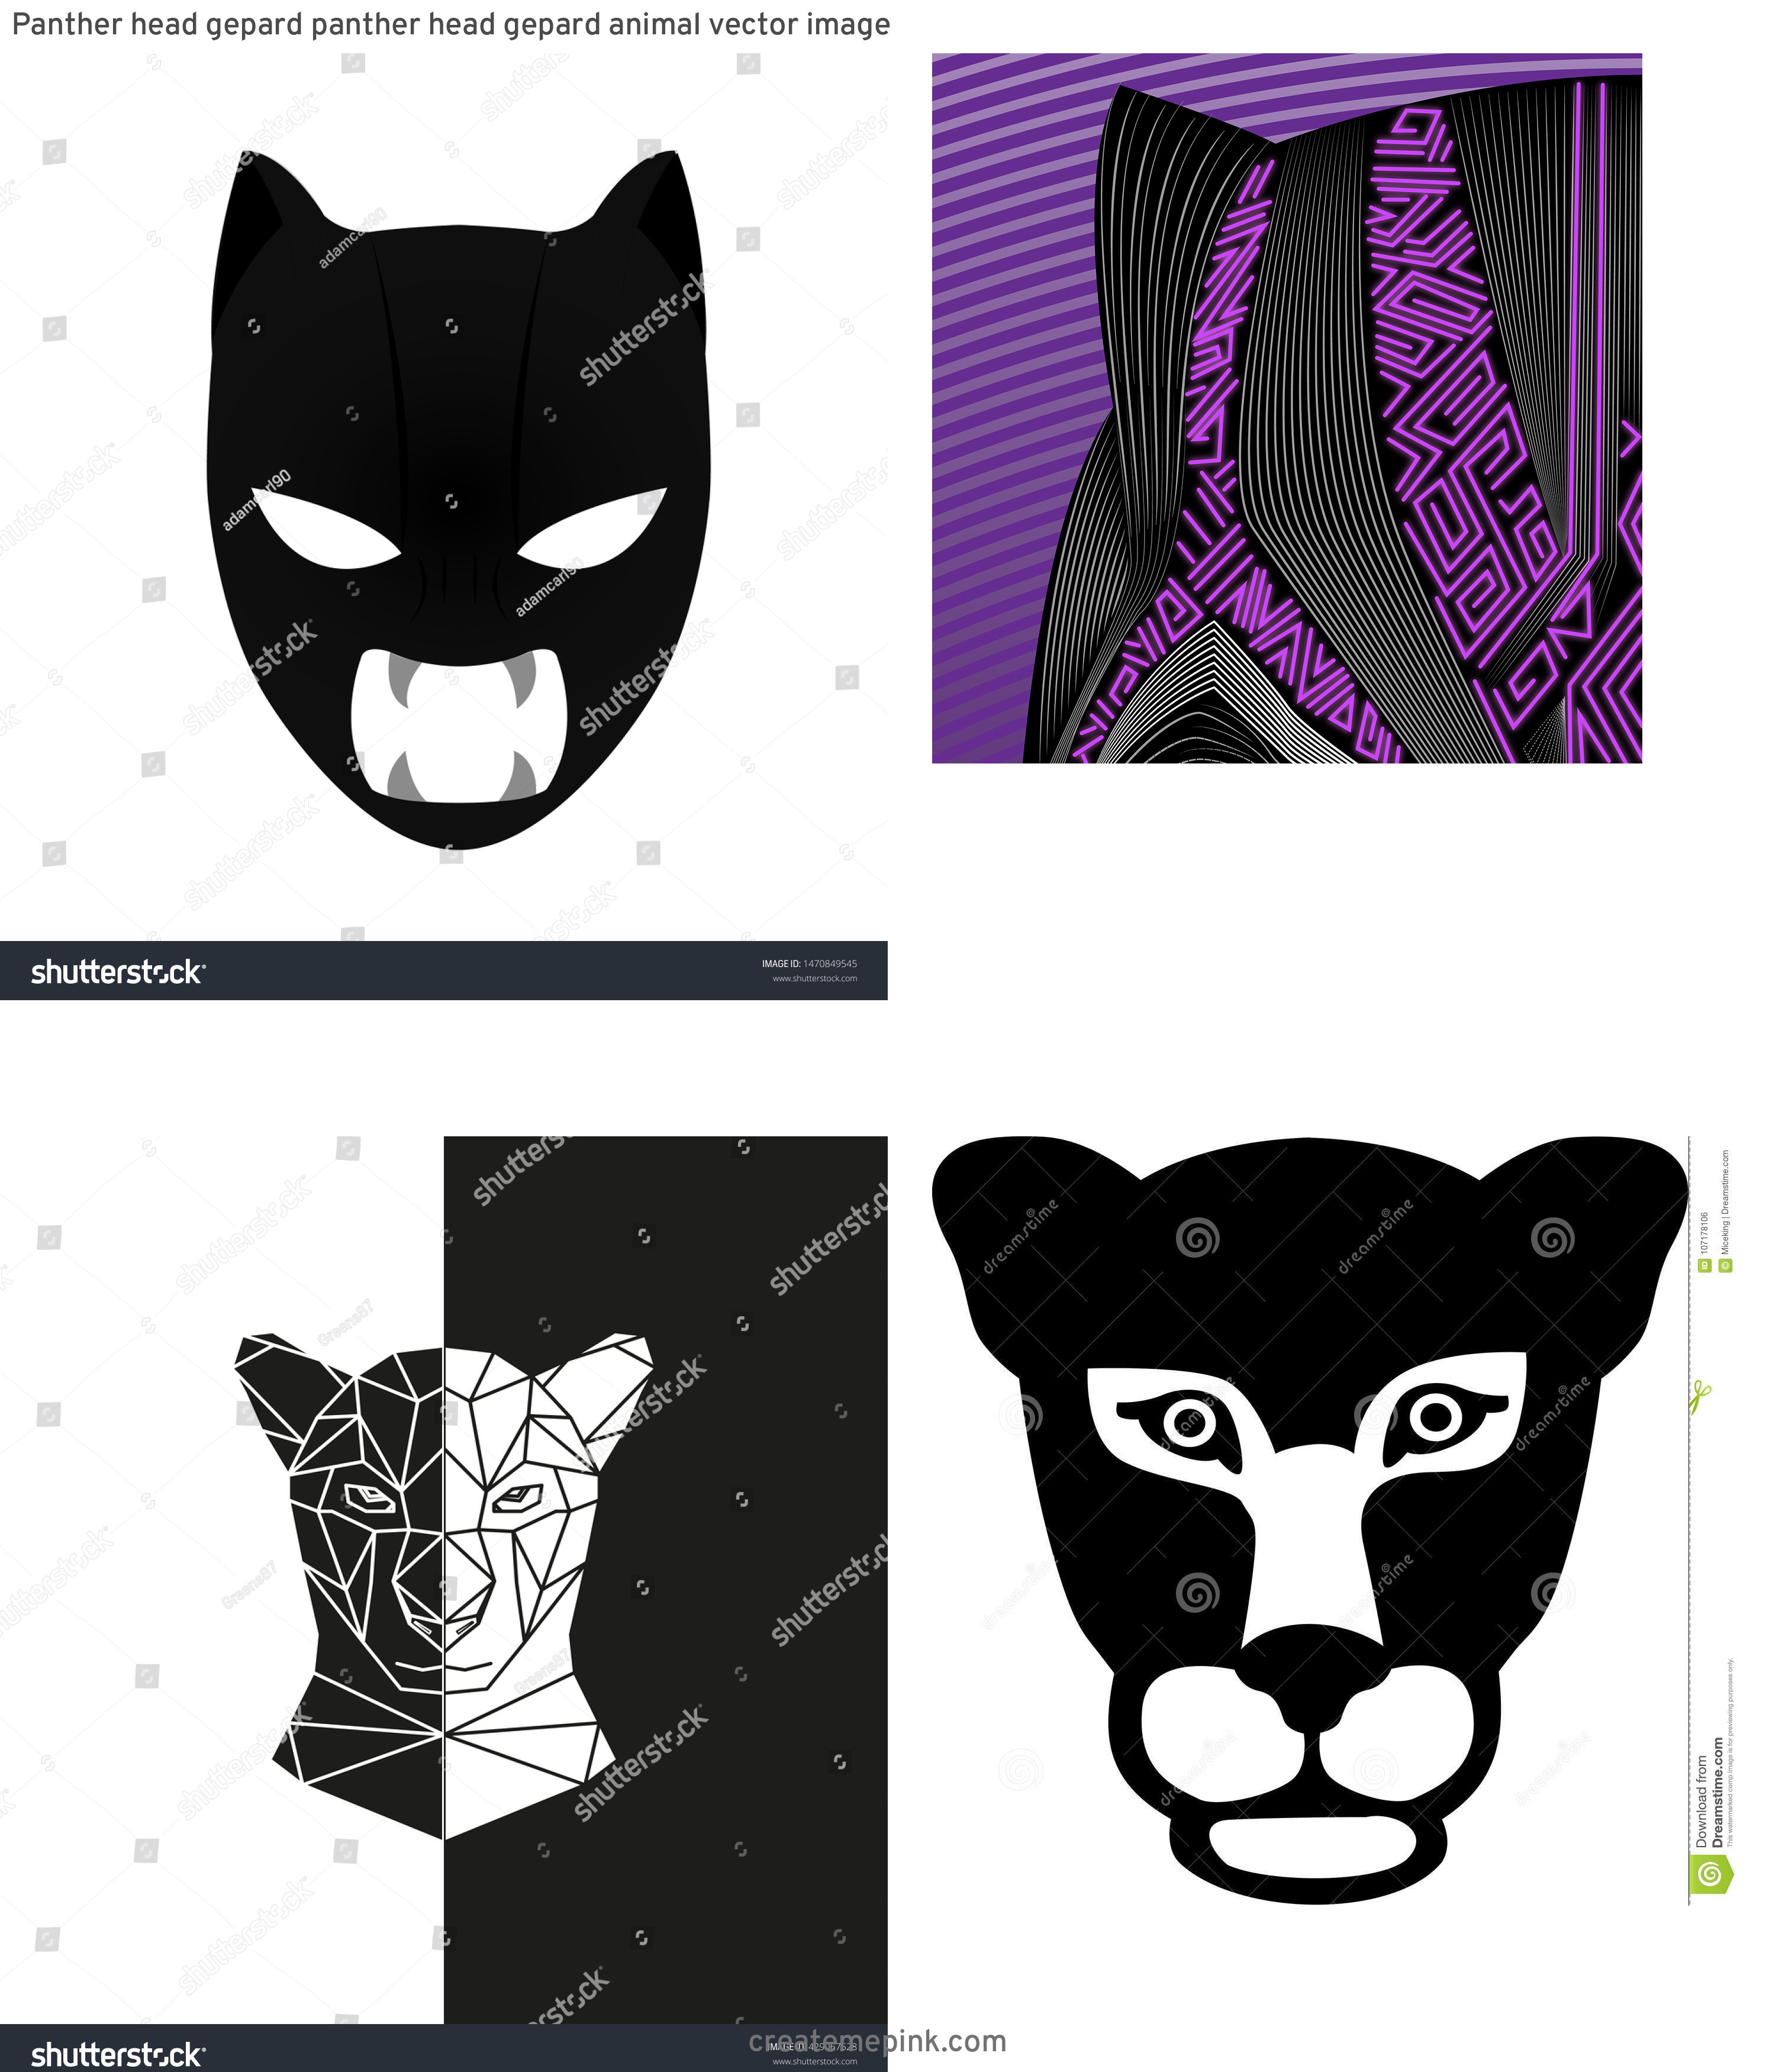 Black Panther Mask Vector: Panther Head Gepard Panther Head Gepard Animal Vector Image